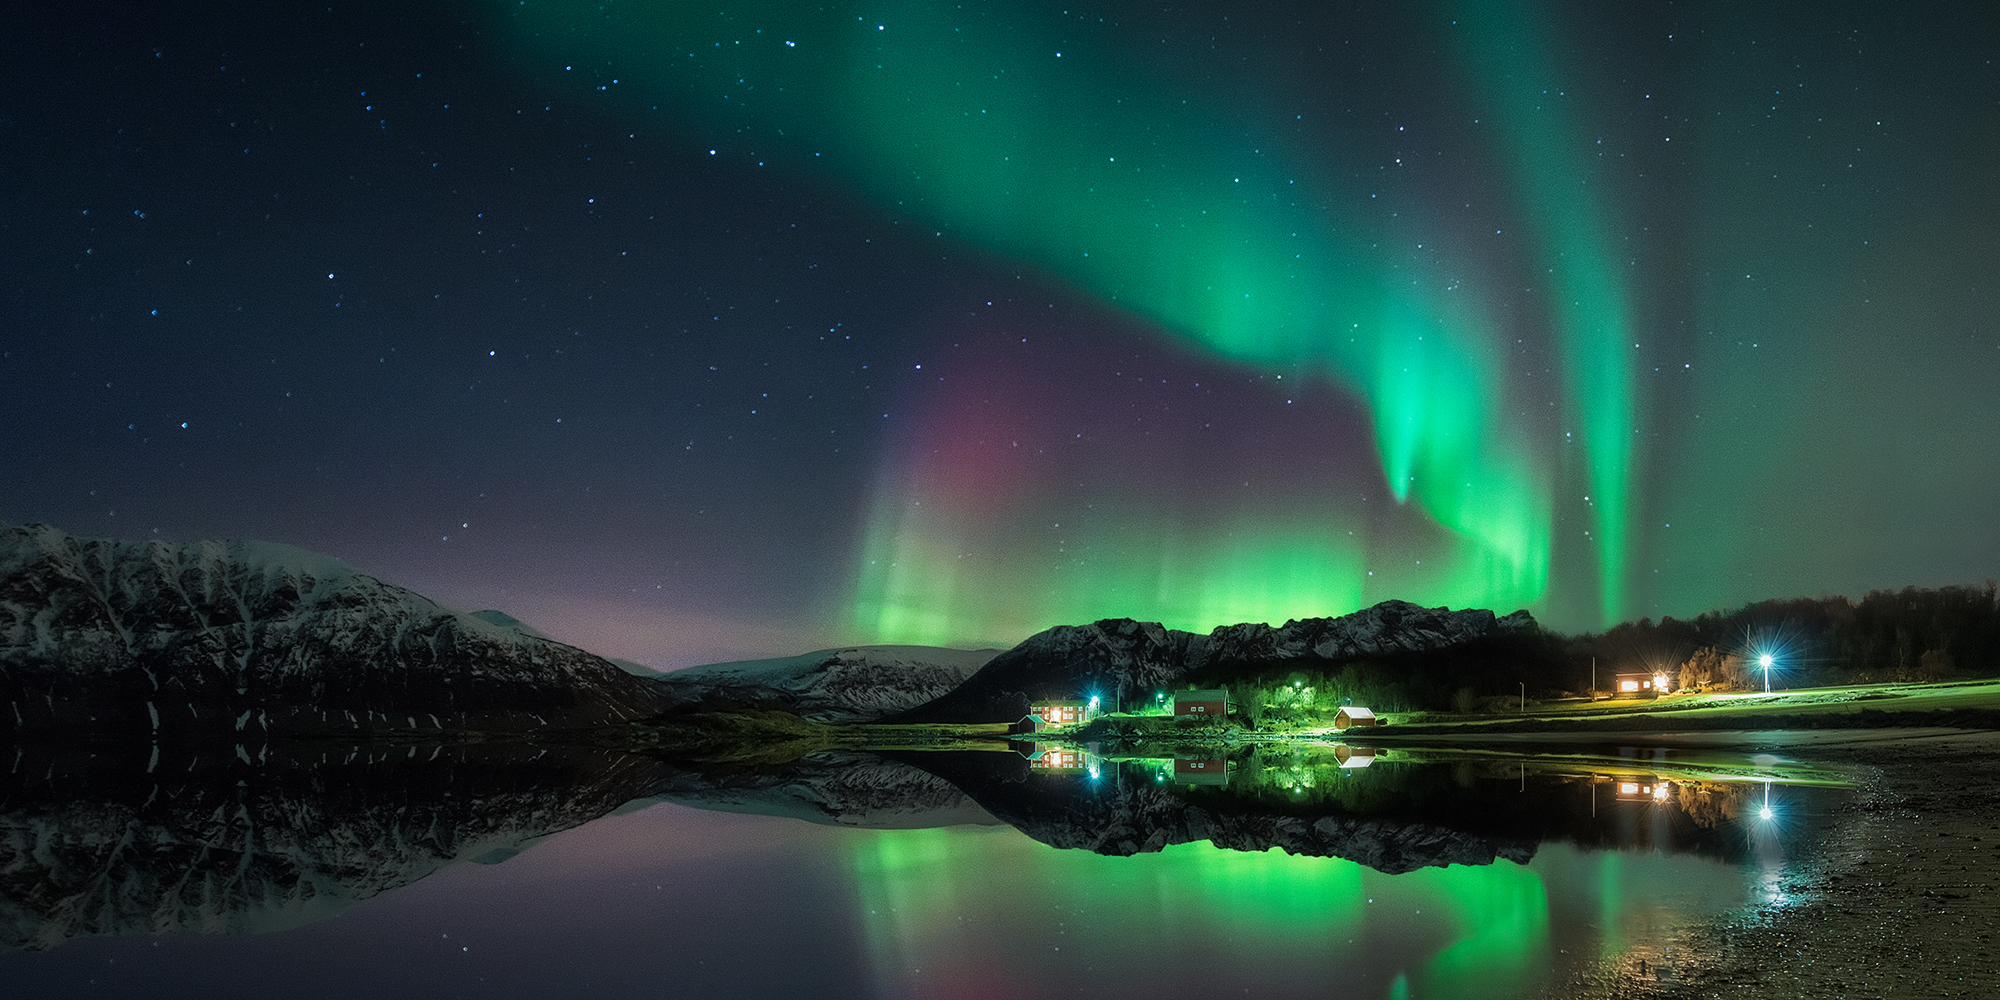 northern-lights-elgsnes-harstad-norway_2-1_16dd74ba-1025-4516-aa3f-d4ca75231c1b.jpg